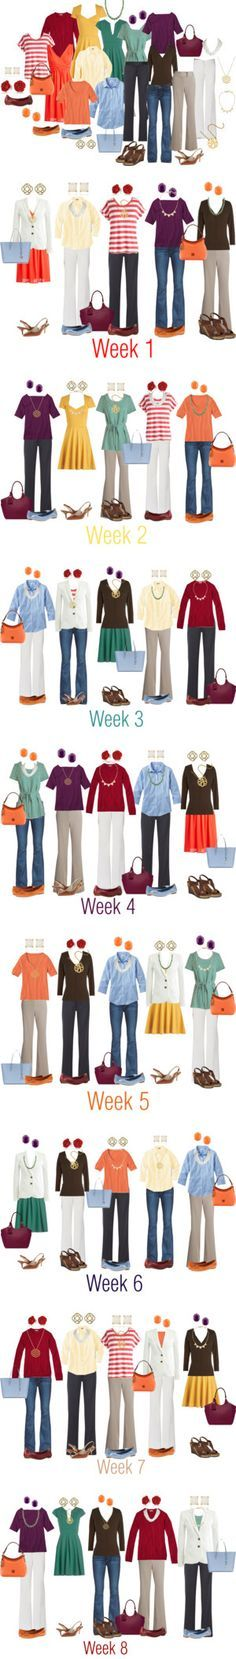 Image result for capsule wardrobe of primary colors